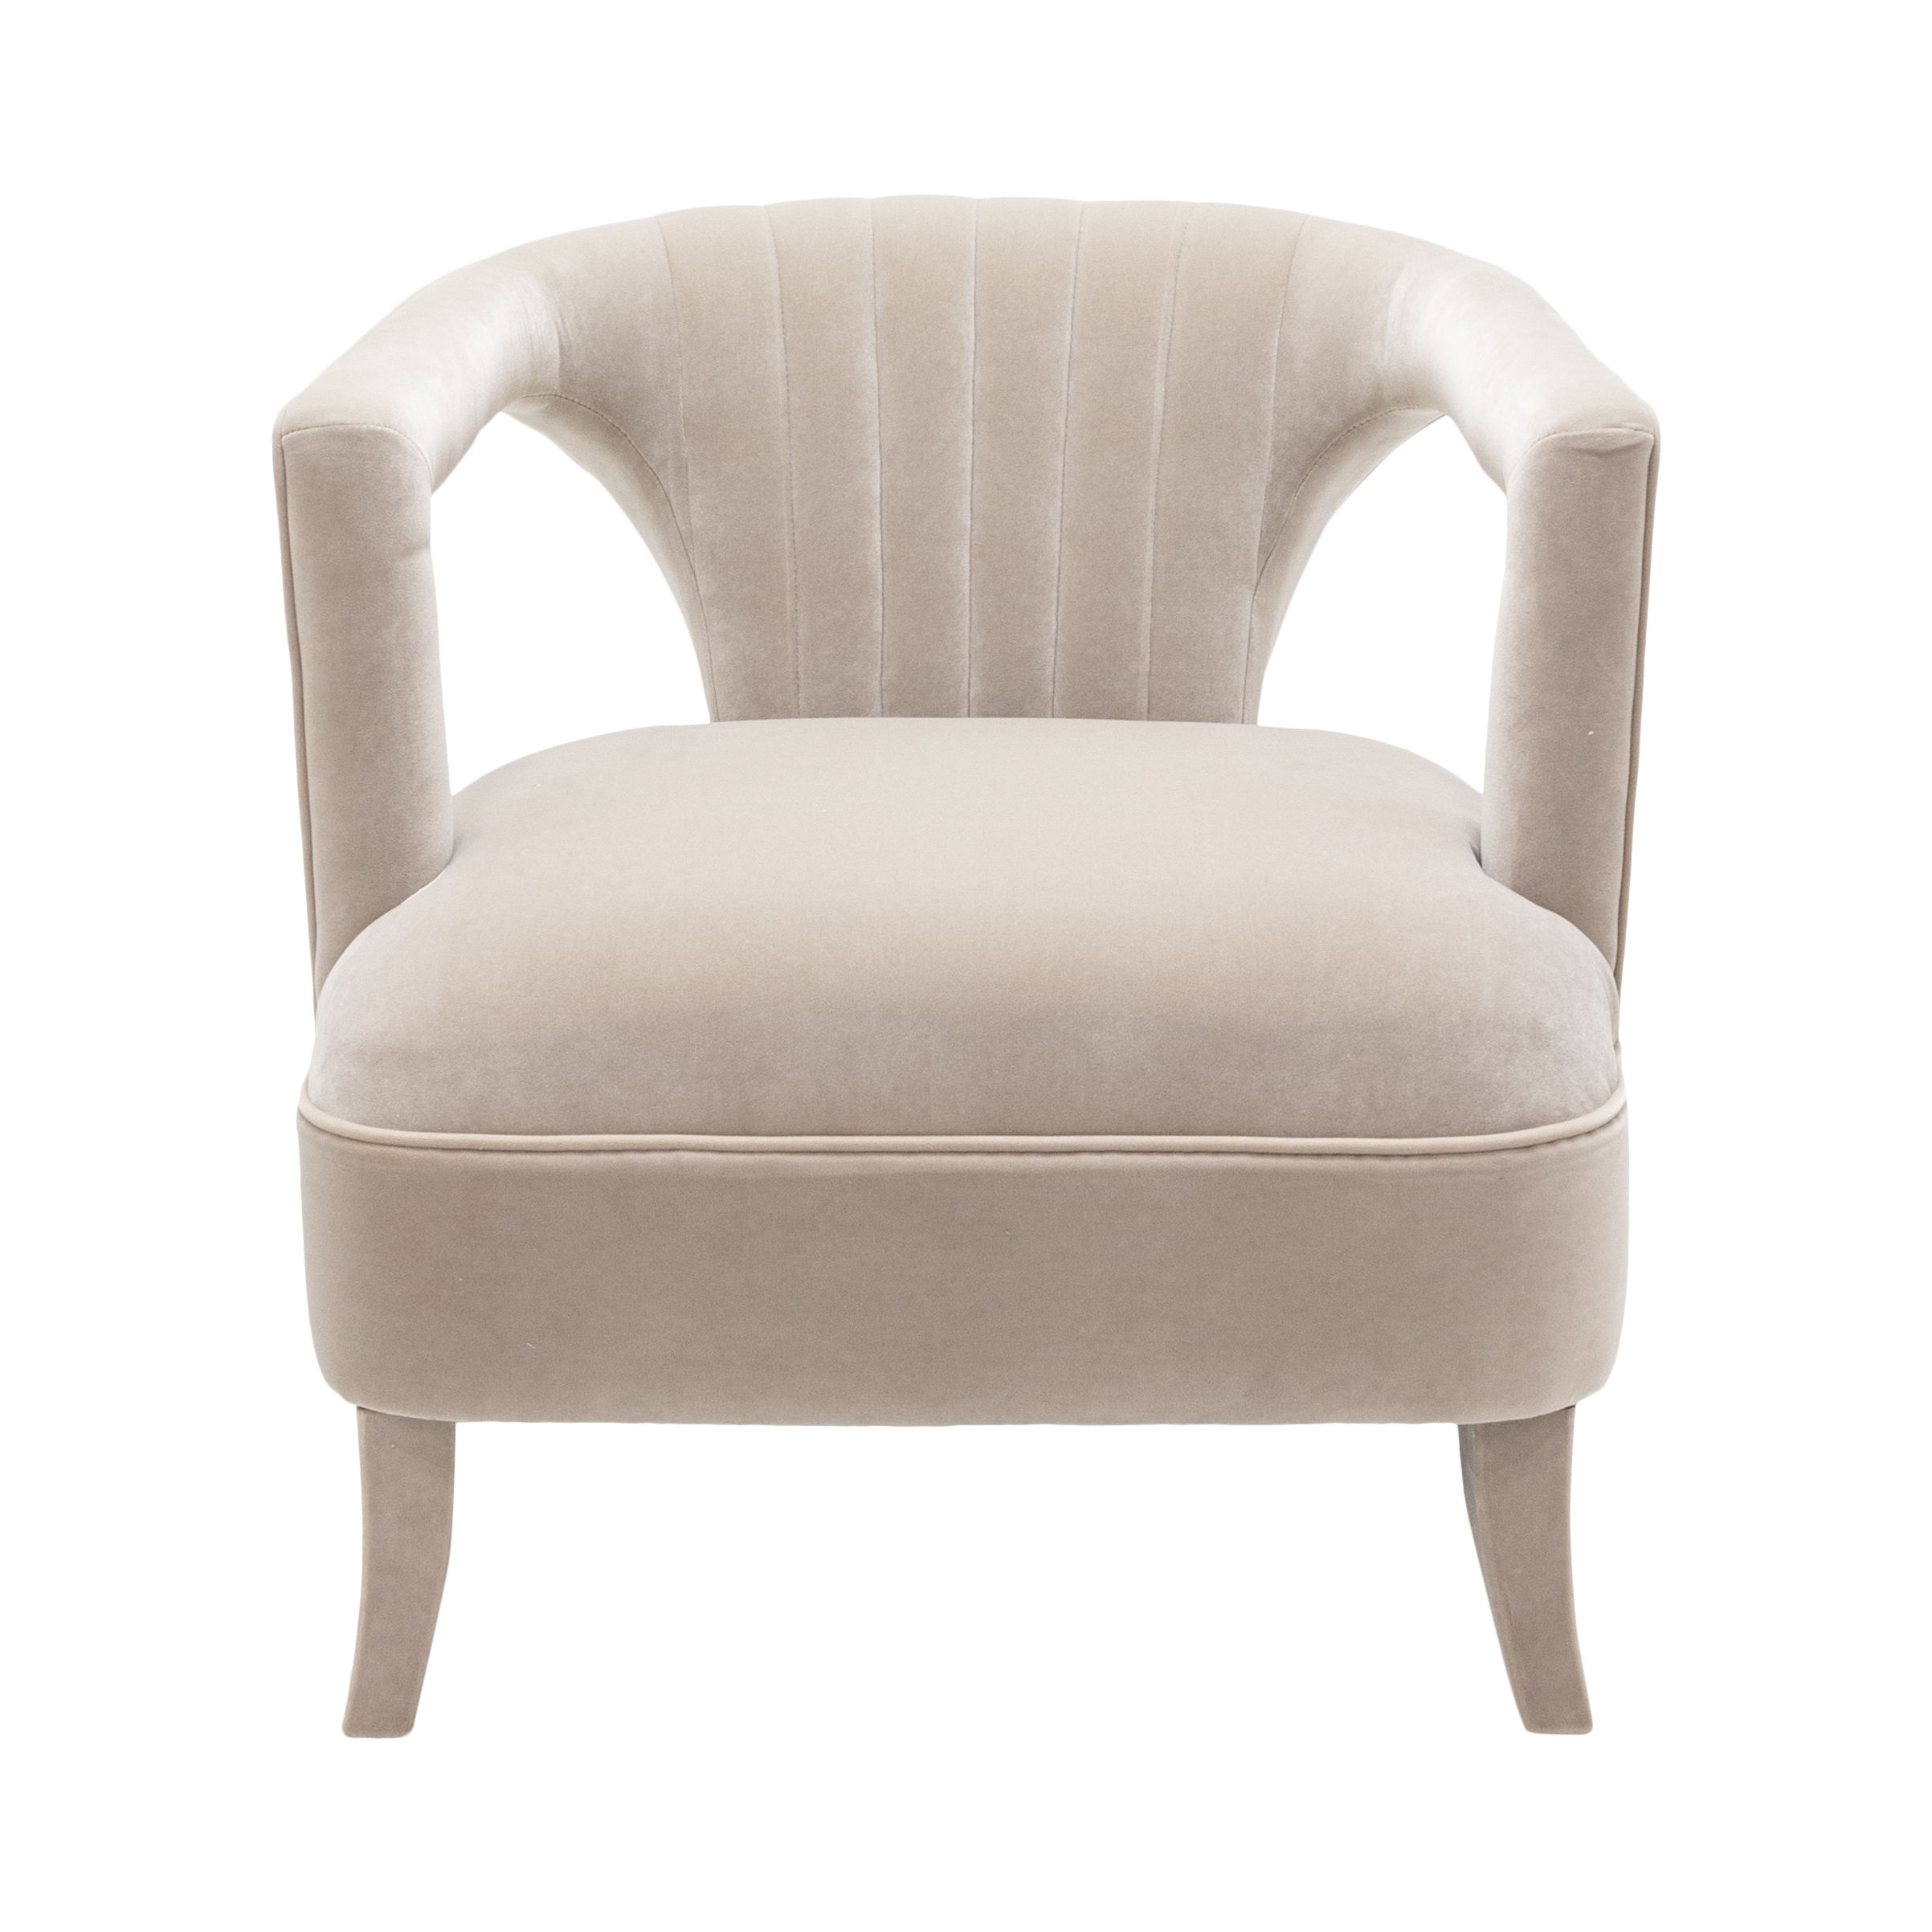 Abner Chairs